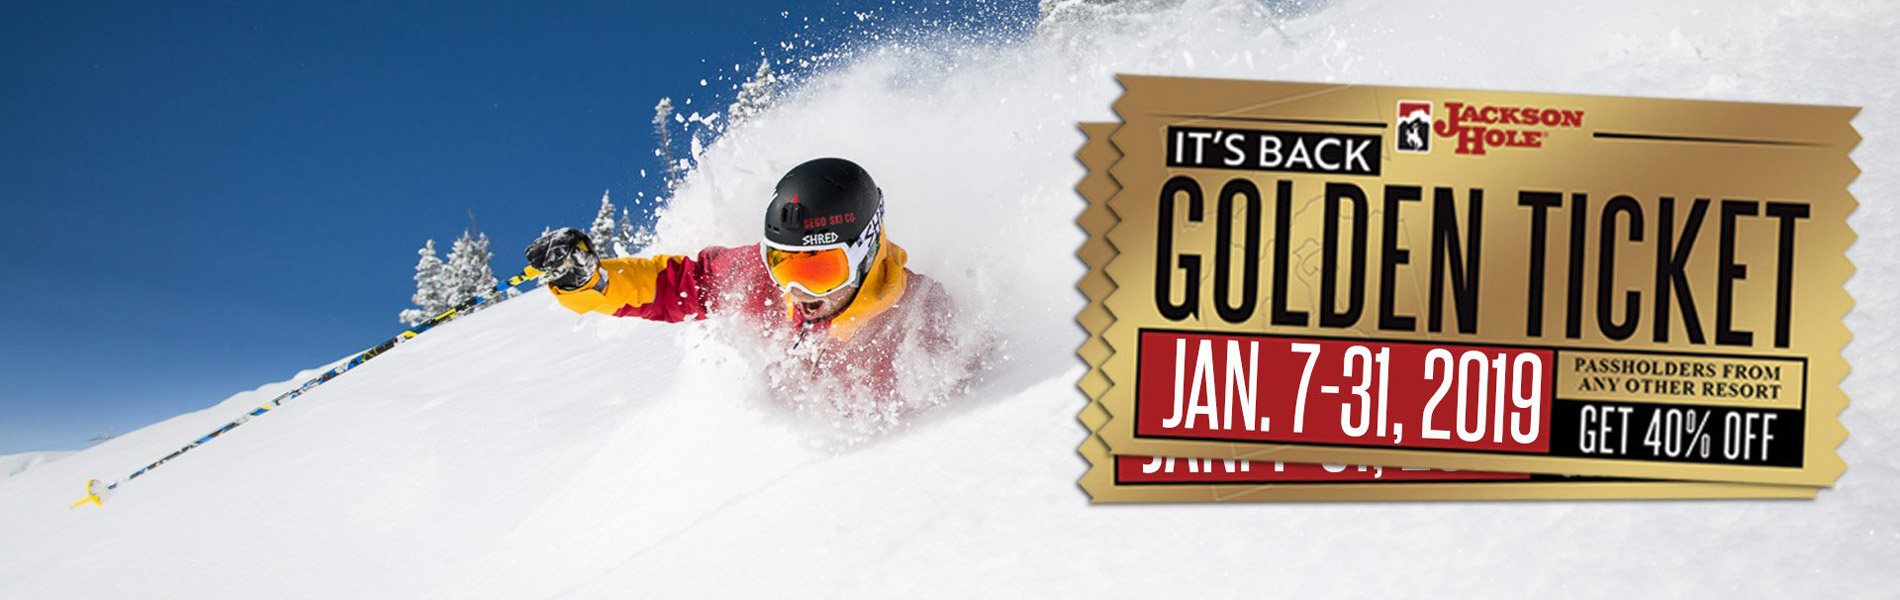 Skier in the snow with the Golden Ticket logo.